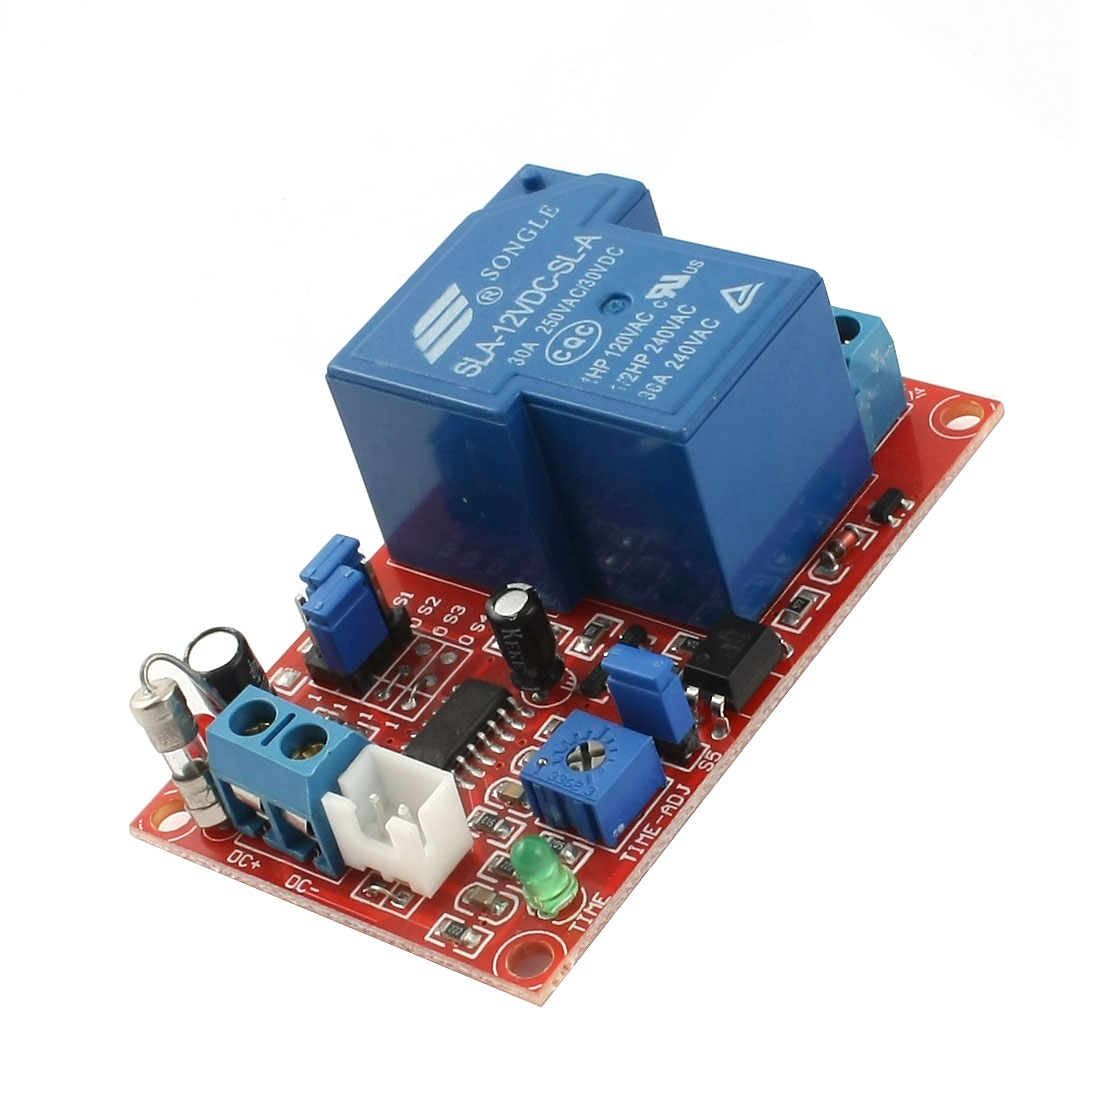 SLA-12VDC-SL-A 1 Way Normally Closed Activating Delay Time Relay Module DC12V 30A